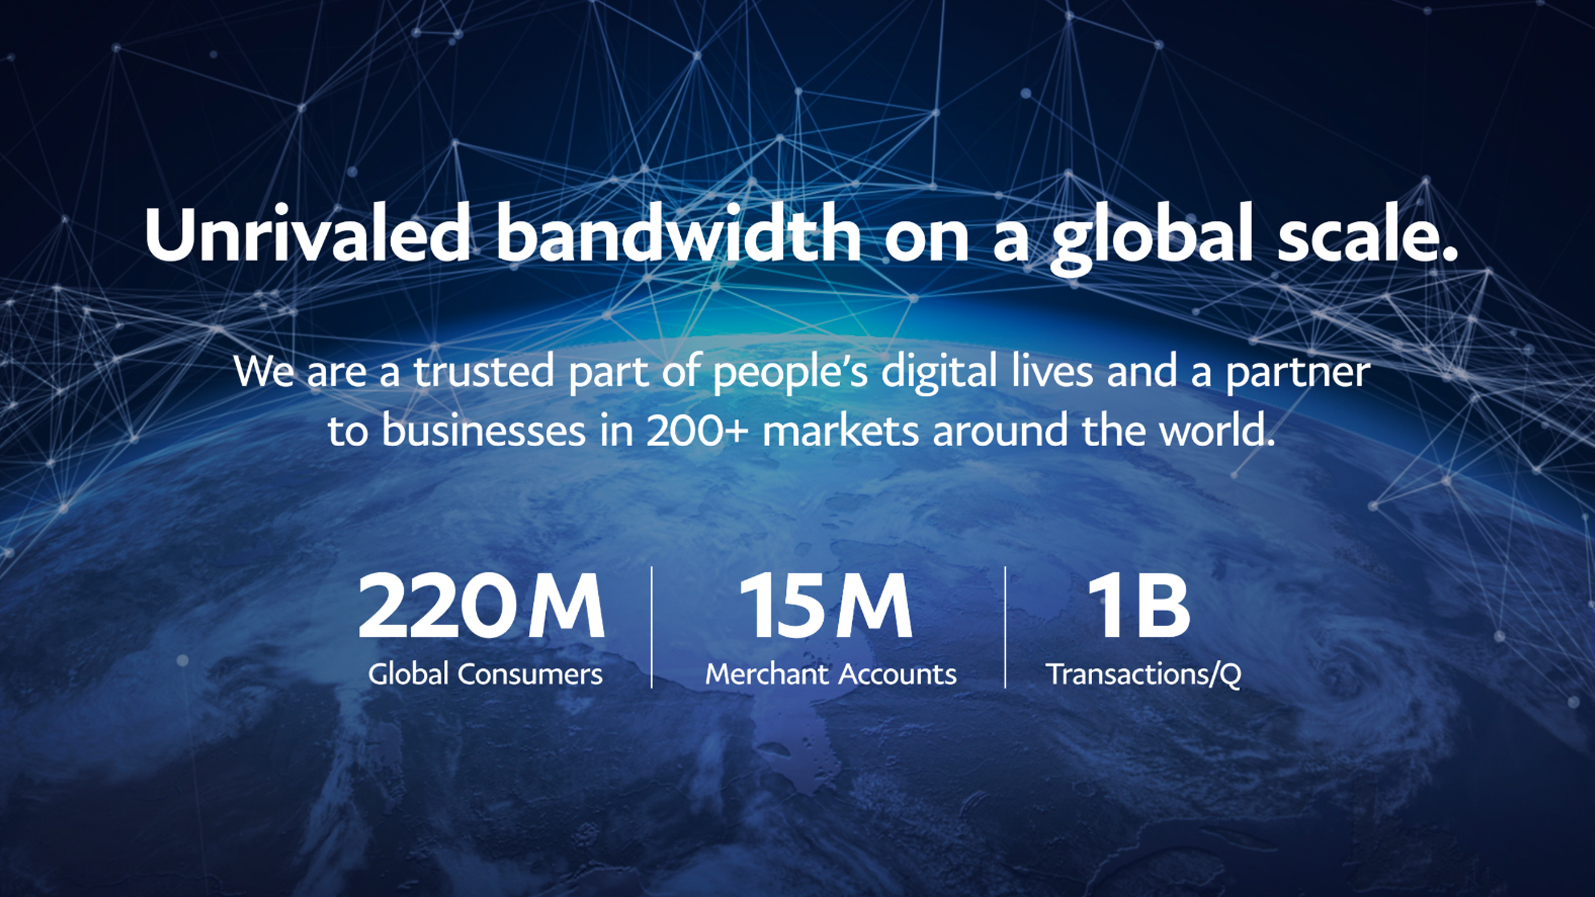 Unrivaled bandwidth on a global scale